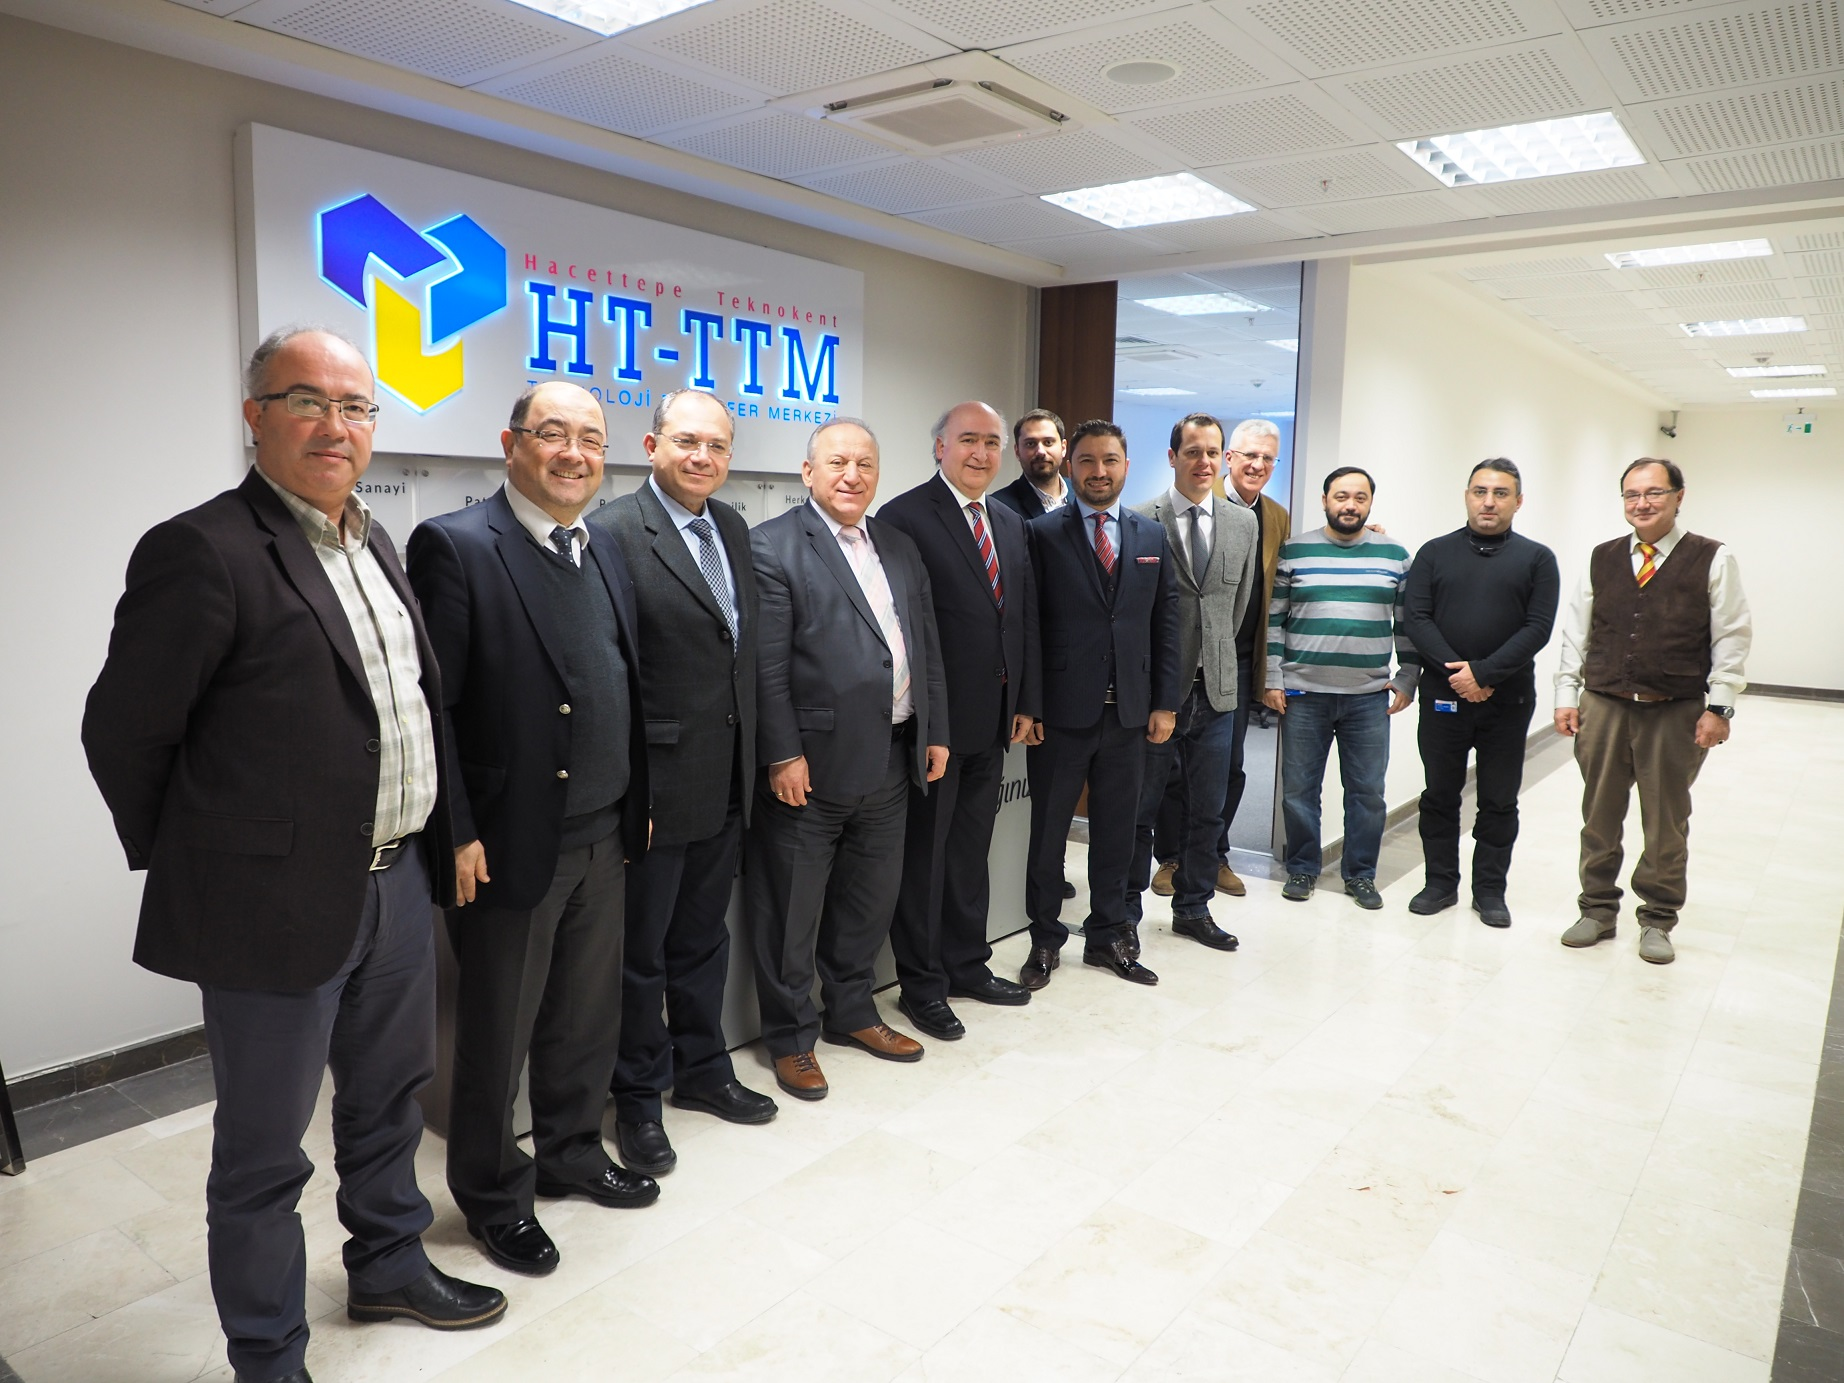 Hacettepe Teknokent Takes the First Step Towards Industry 4.0